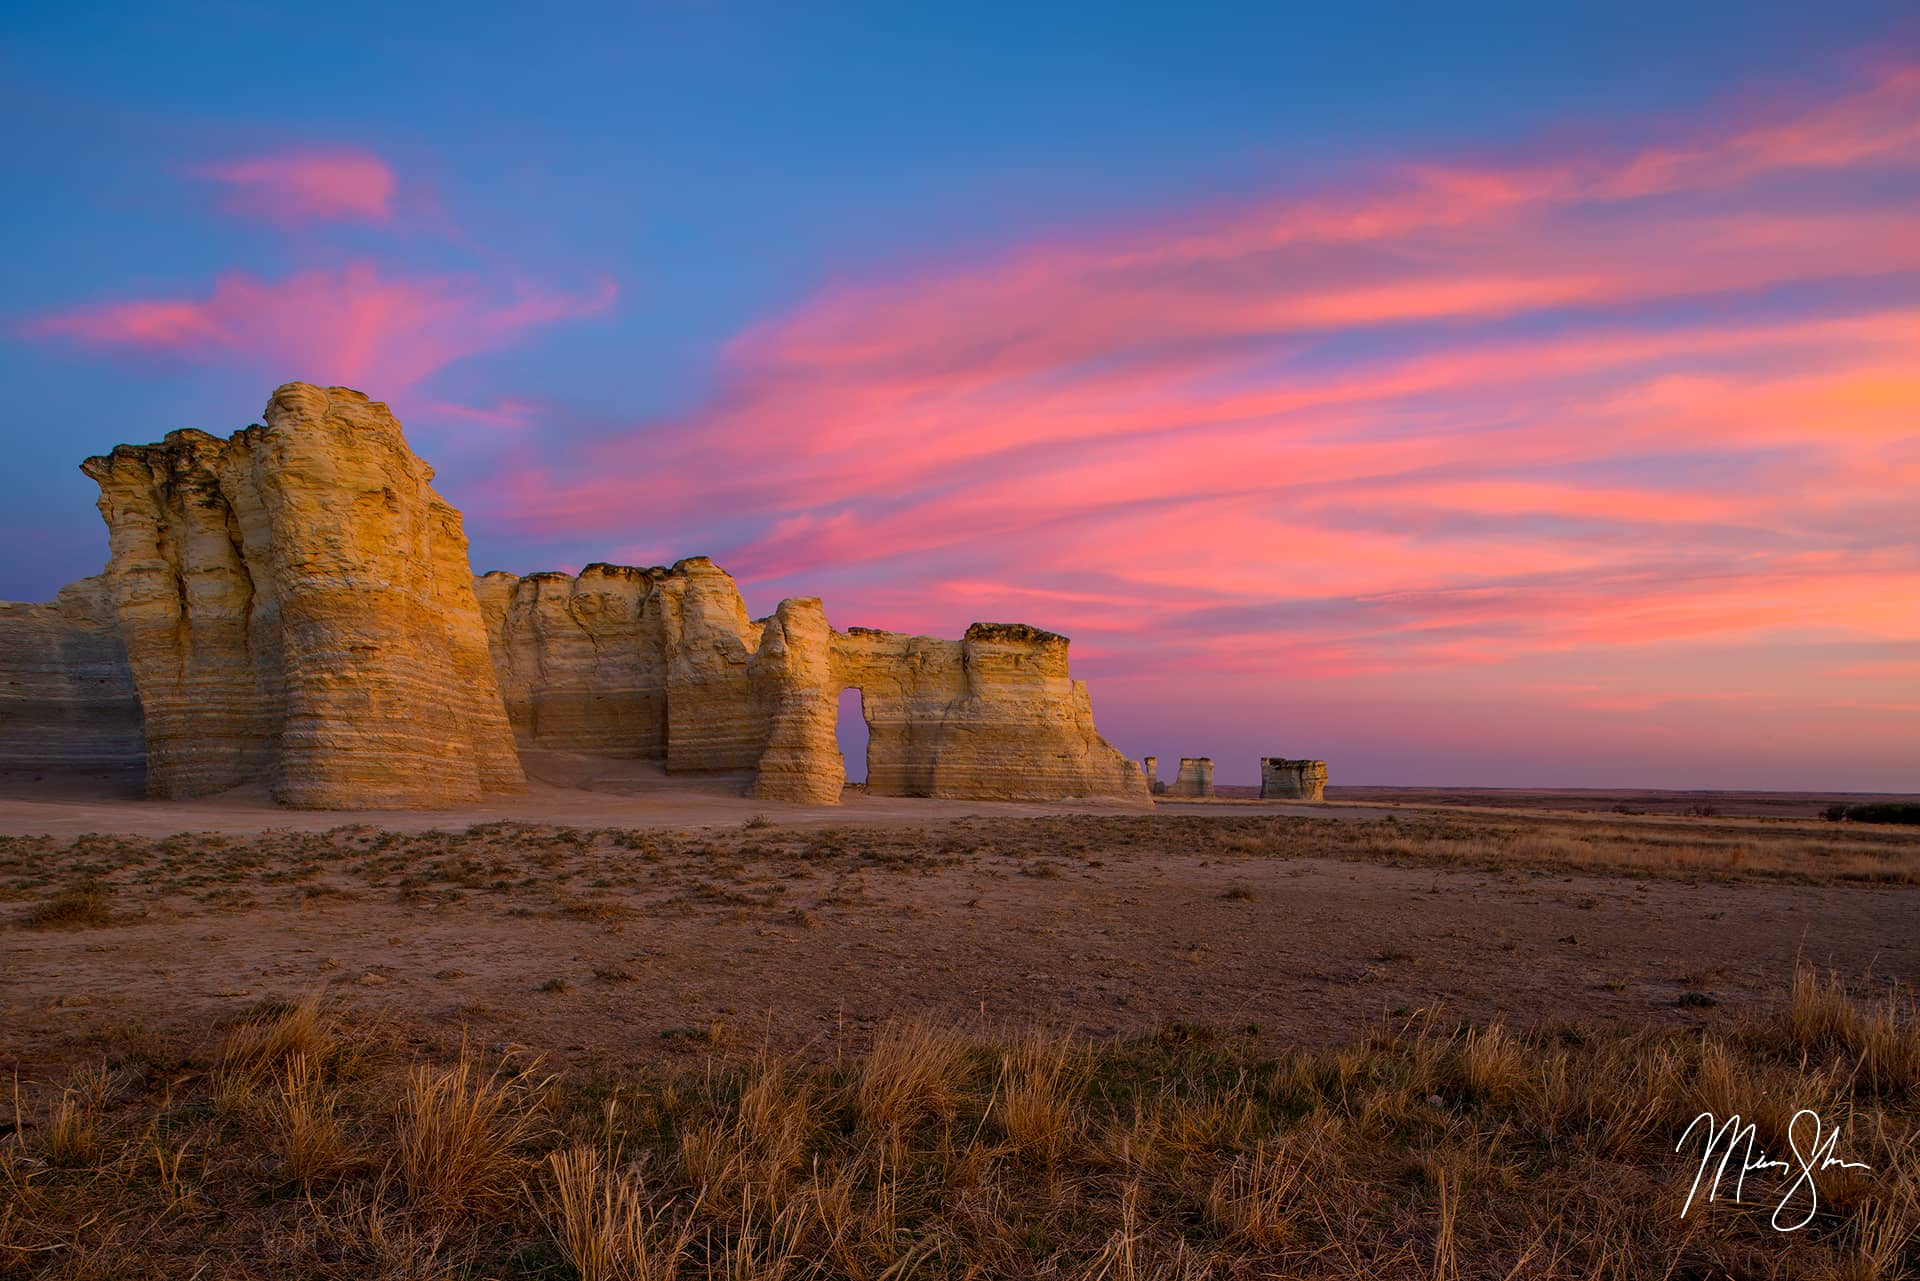 Open edition fine art print of Monument Rocks Sunset from Mickey Shannon Photography. Location: Monument Rocks, Kansas